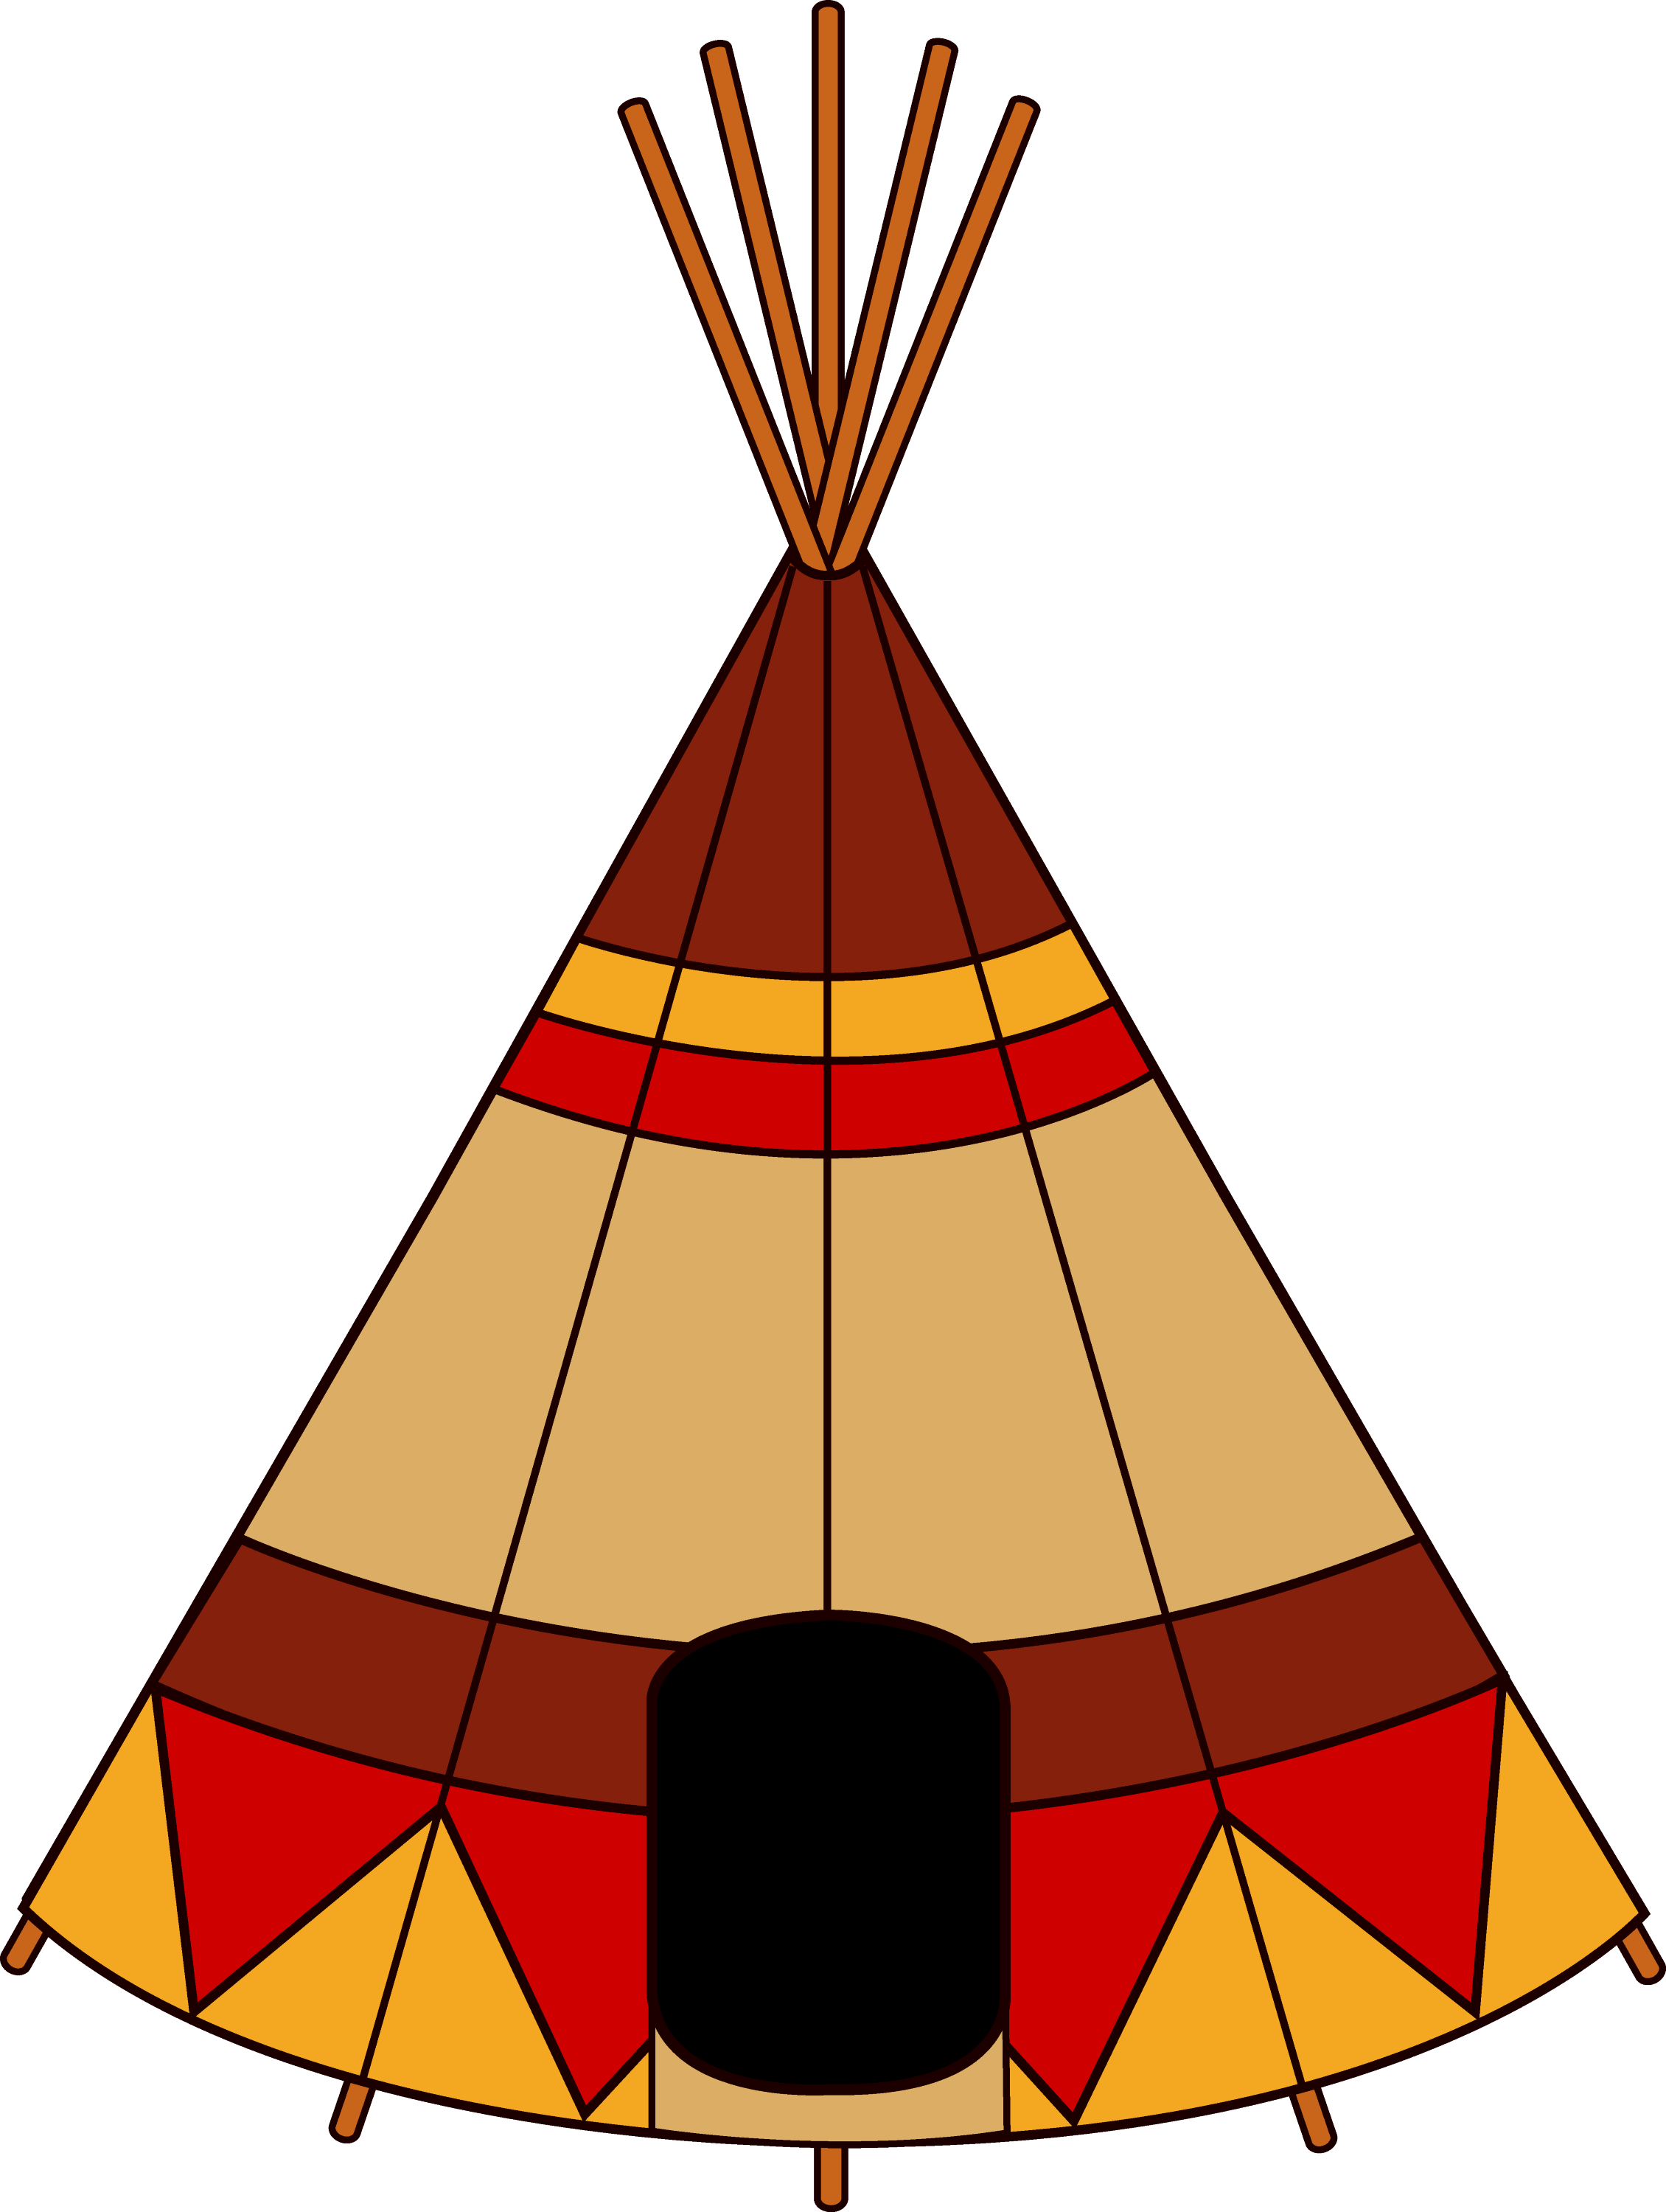 native american teepee free clip art rh sweetclipart com black and white teepee clipart black and white teepee clipart